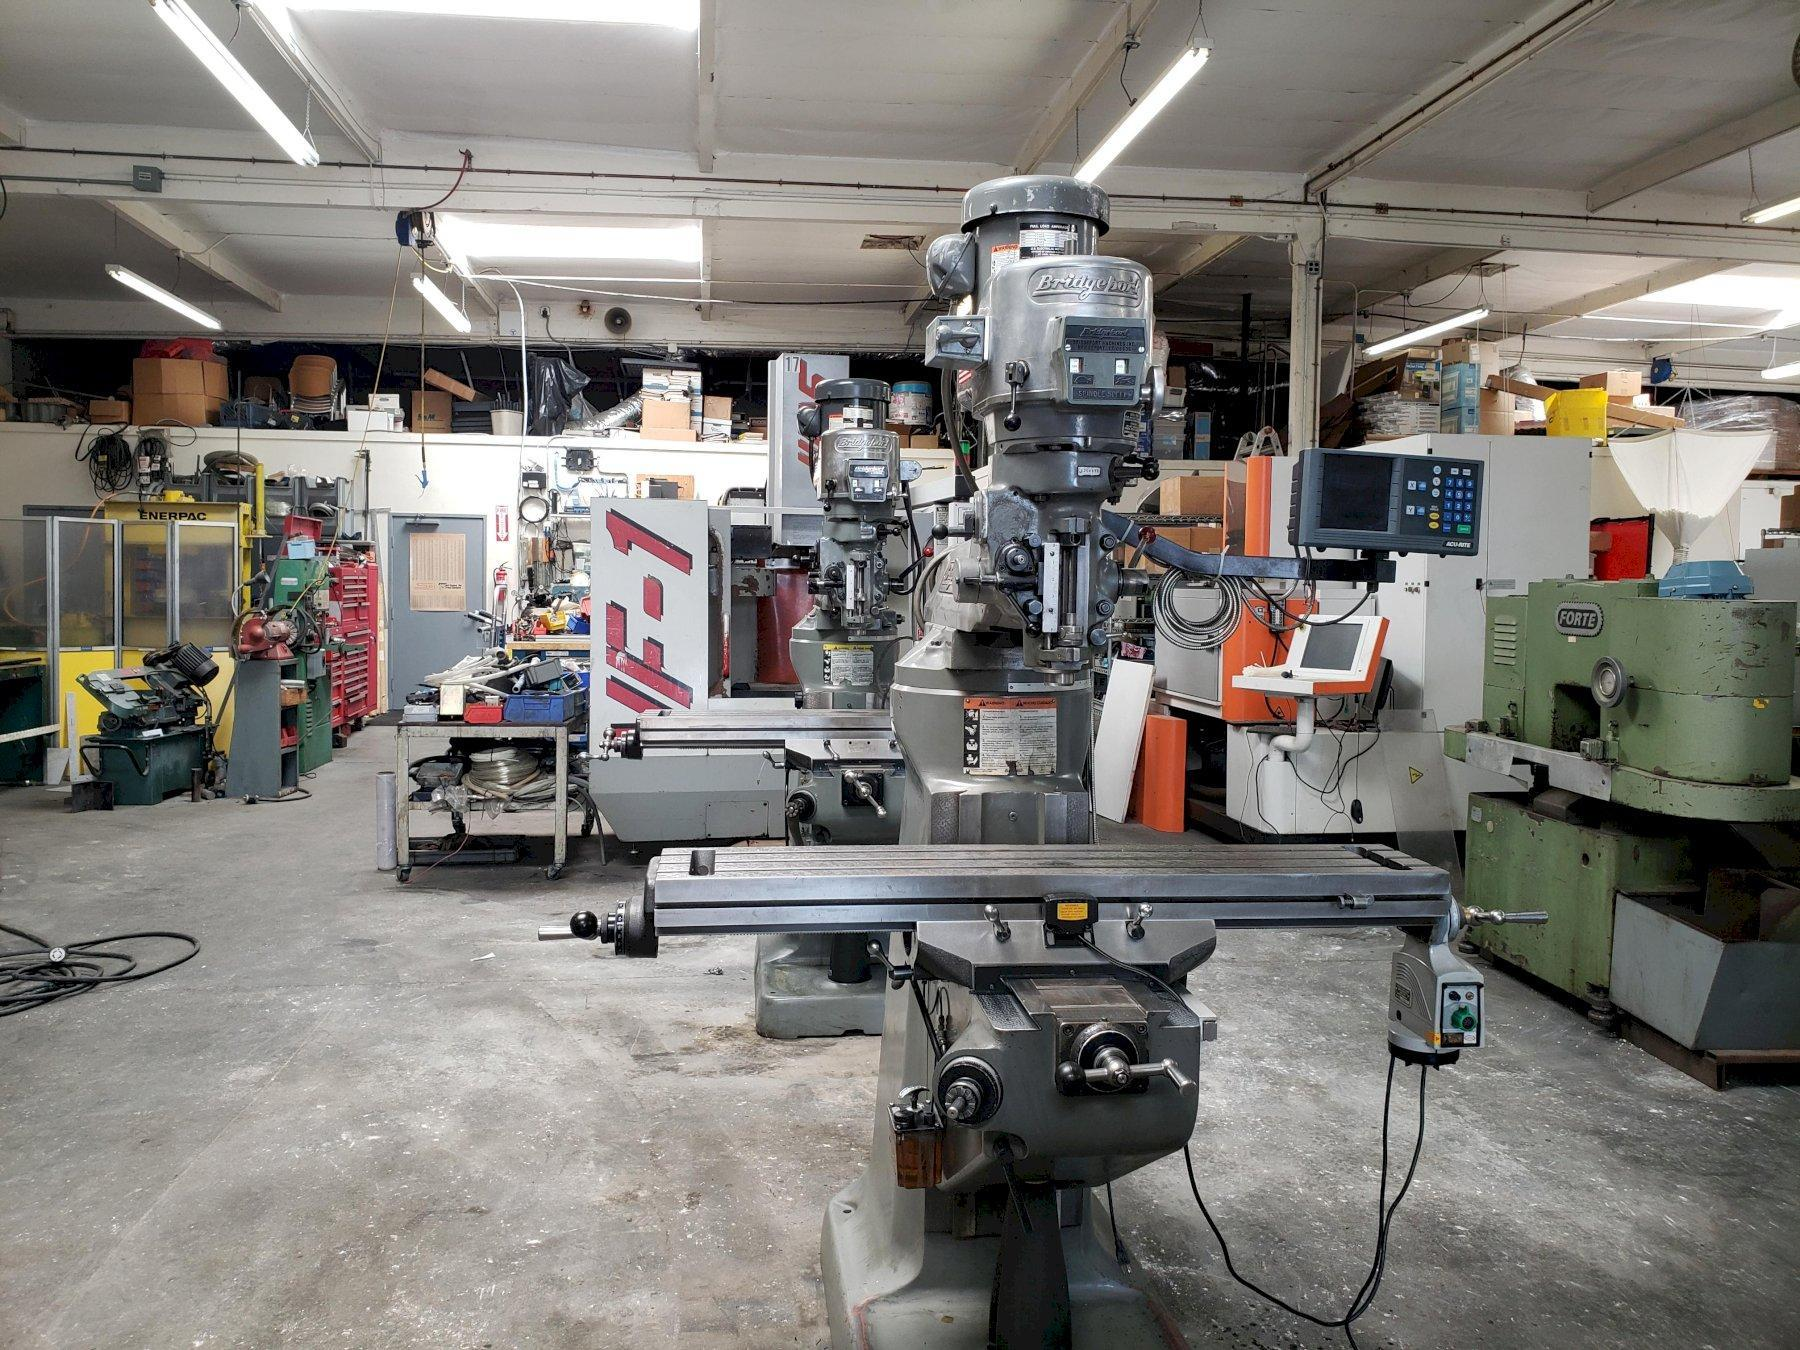 Bridgeport Series I Vertical Mill with: Acu-Rite 2-Axis DRO, Power Feed Table, New X&Y Screws and Nuts, and One Shot Lube.